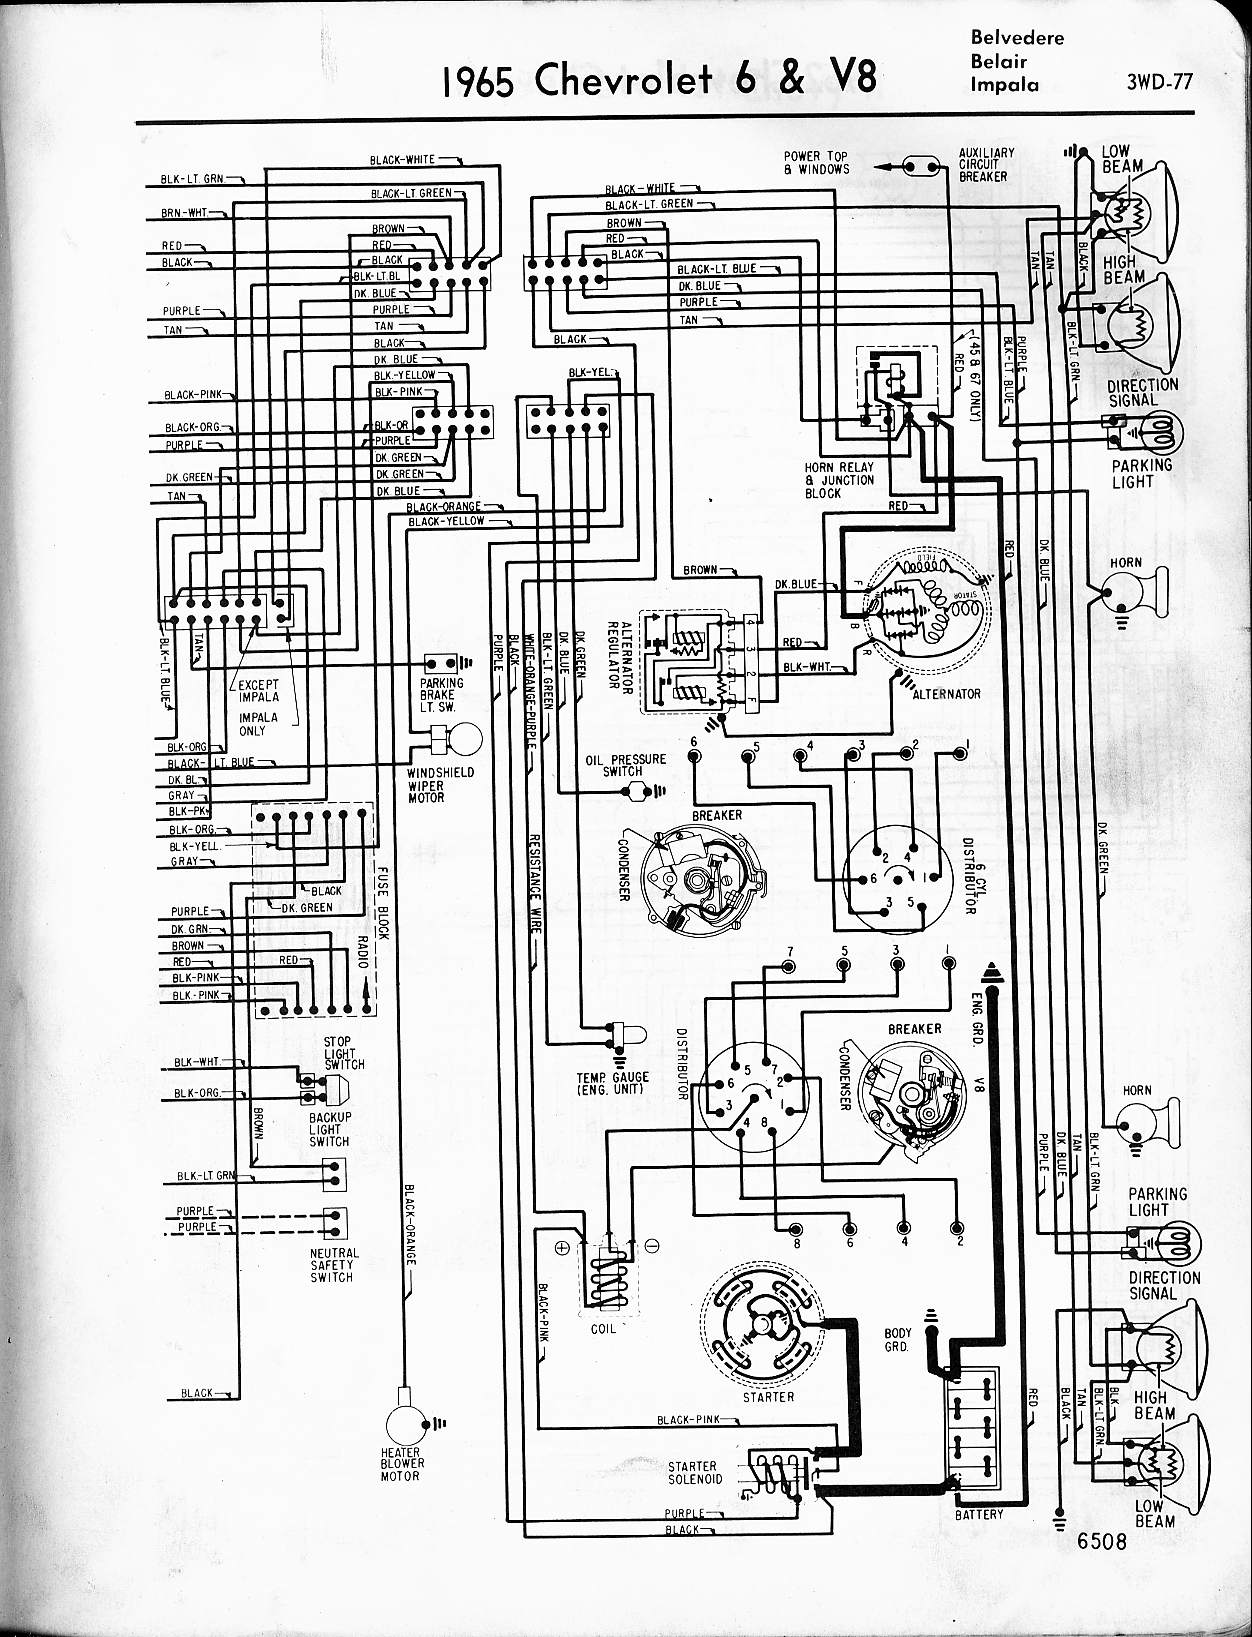 chevy wiring diagrams 1965 6 v8 biscayne bel air impala